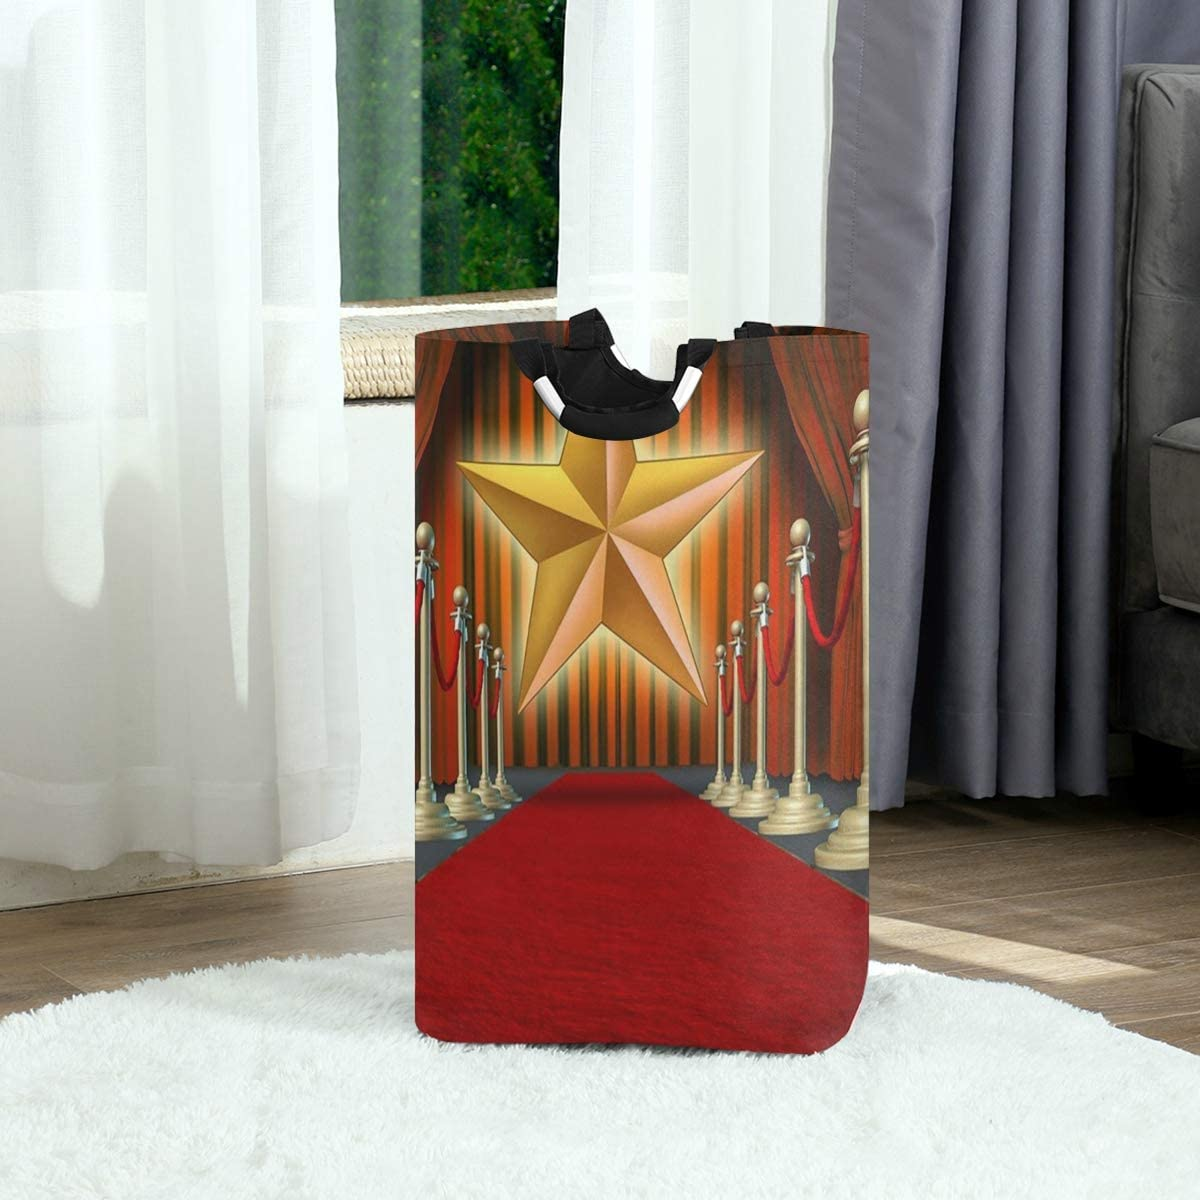 GRATNNA Laundry Bag Red Stage Carpet Grand at Podium with Curtains Stars Large Laundry Hamper Bags for Heavy-Duty Use with Strap,Standing Clothes Basket Collapsible for Dorm Travel Bathroom